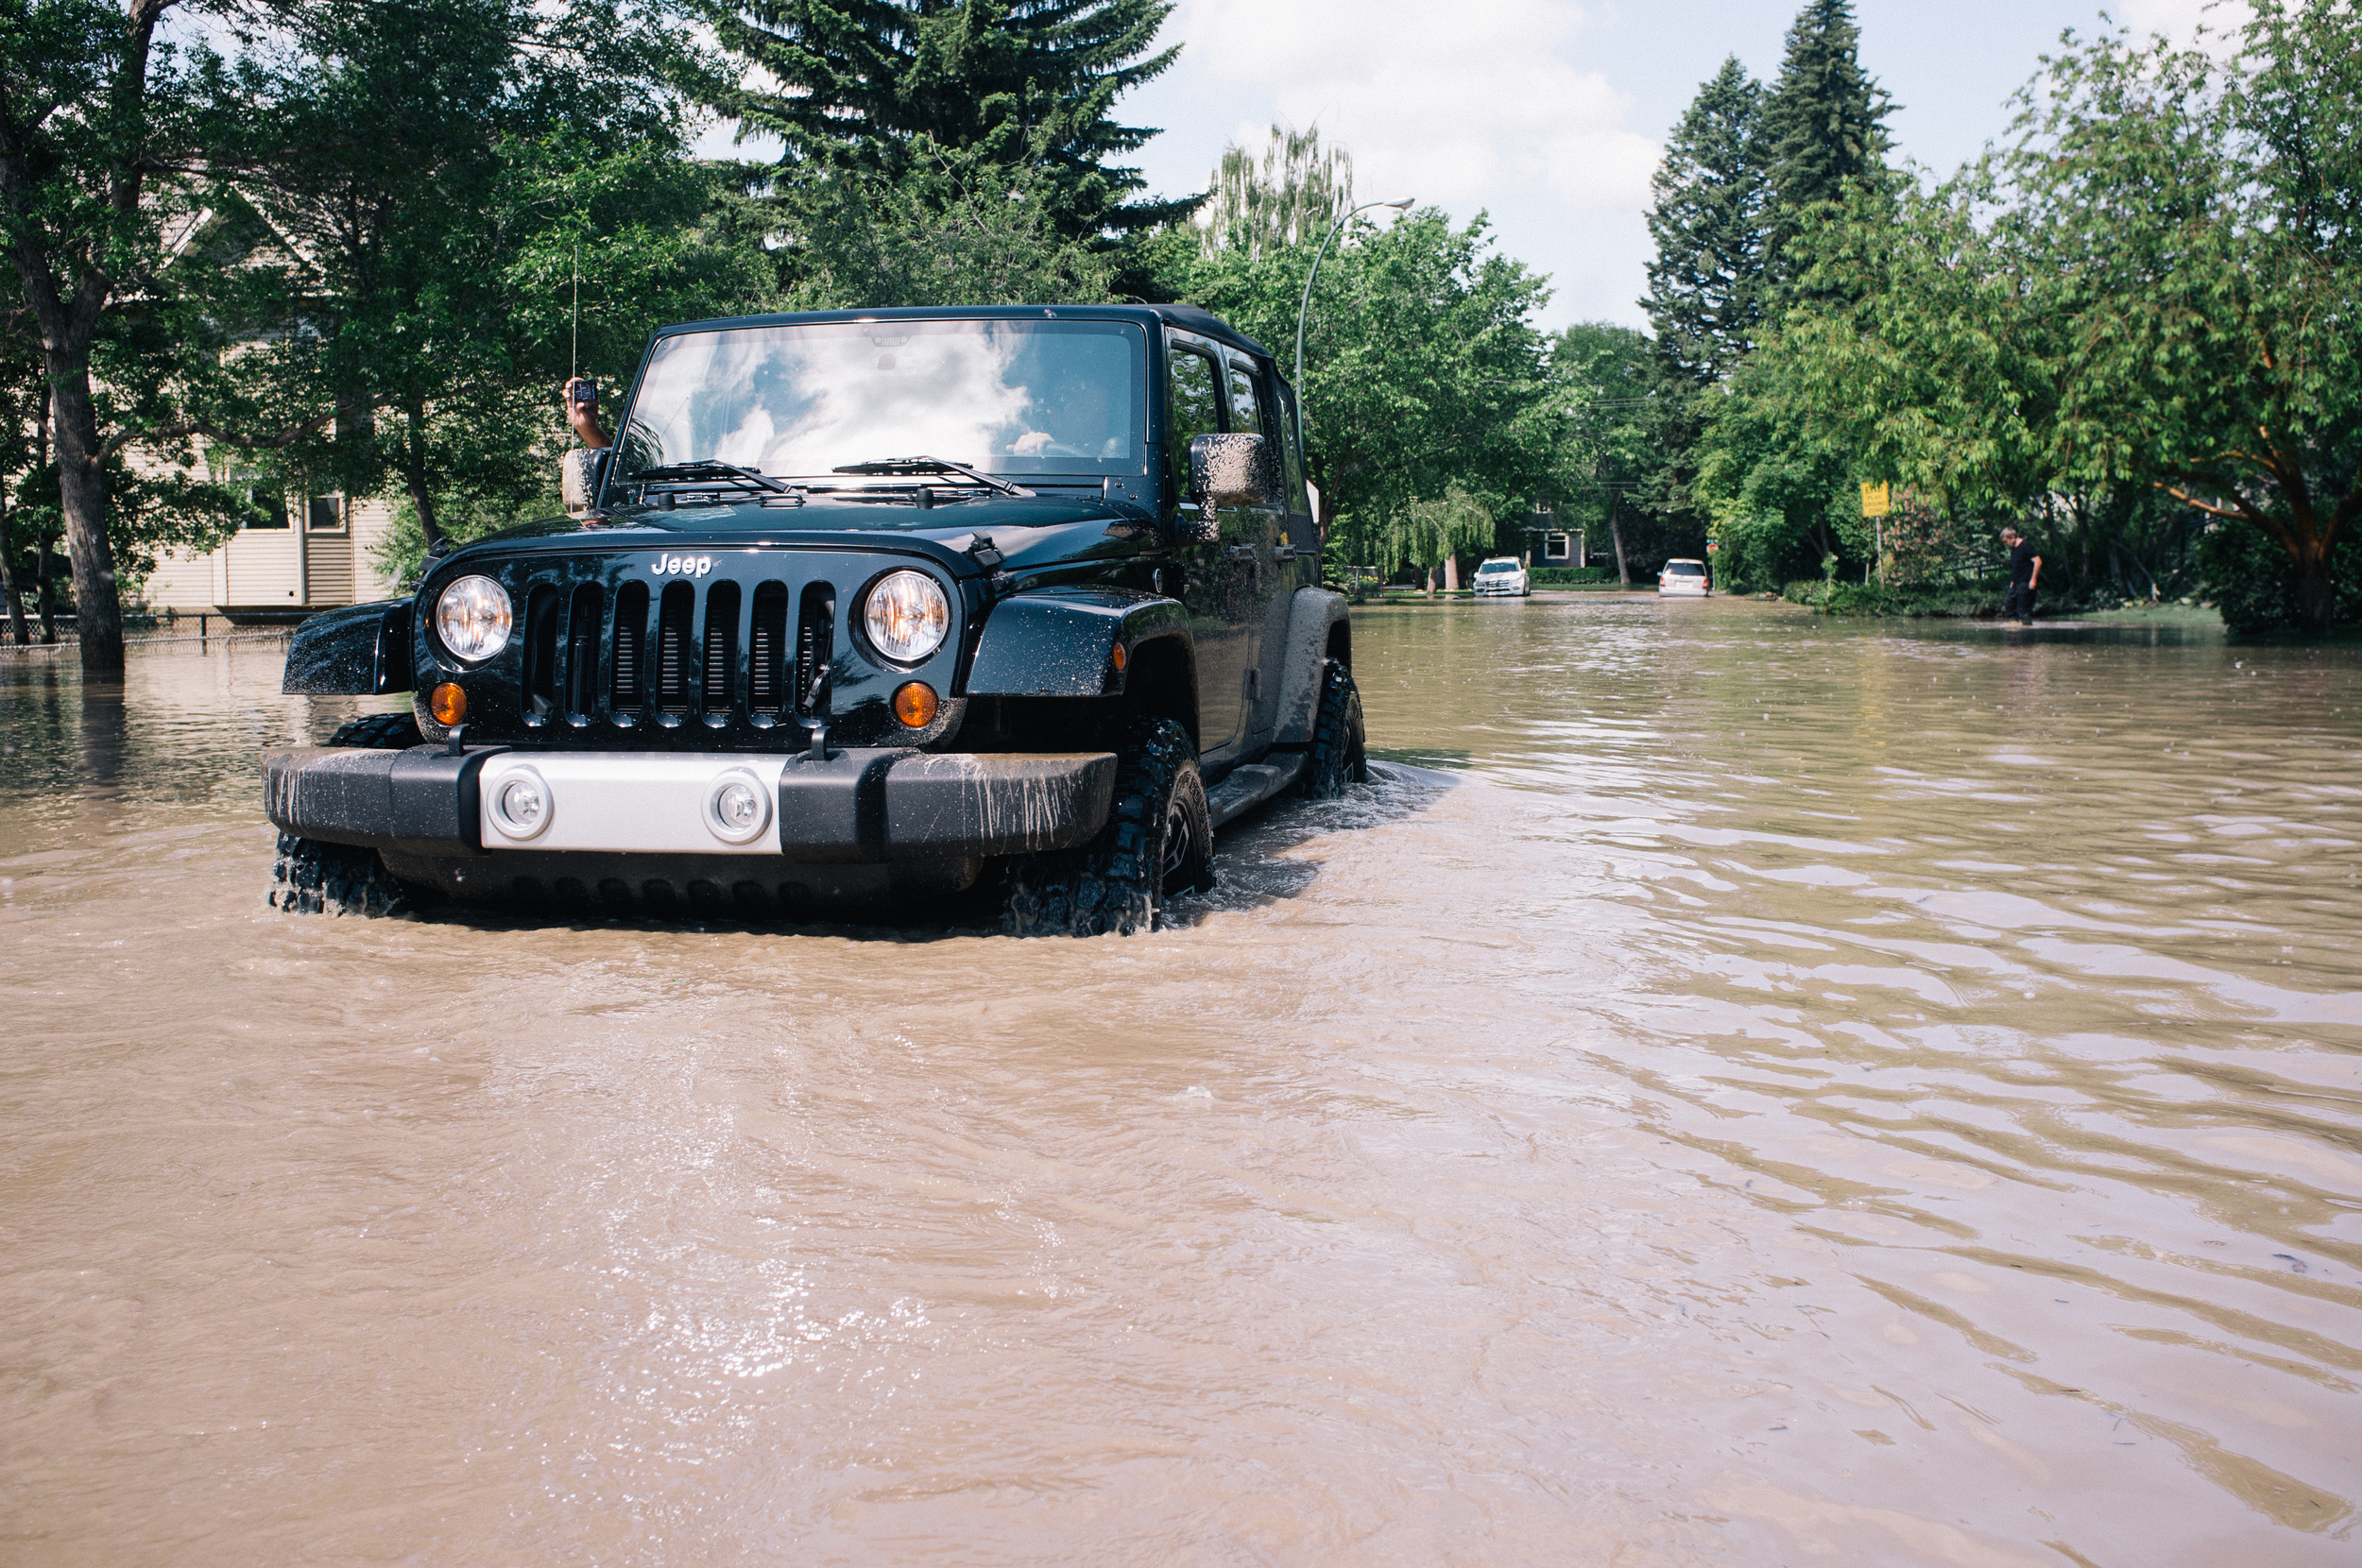 A driver retreats from waist-high waters. I had a heartbreaking conversation with a homeowner that had just returned moments before this. The waters having receded about 2', much of the playground to my left lie completely submerged. I wasn't comfortable travelling further east up this street.